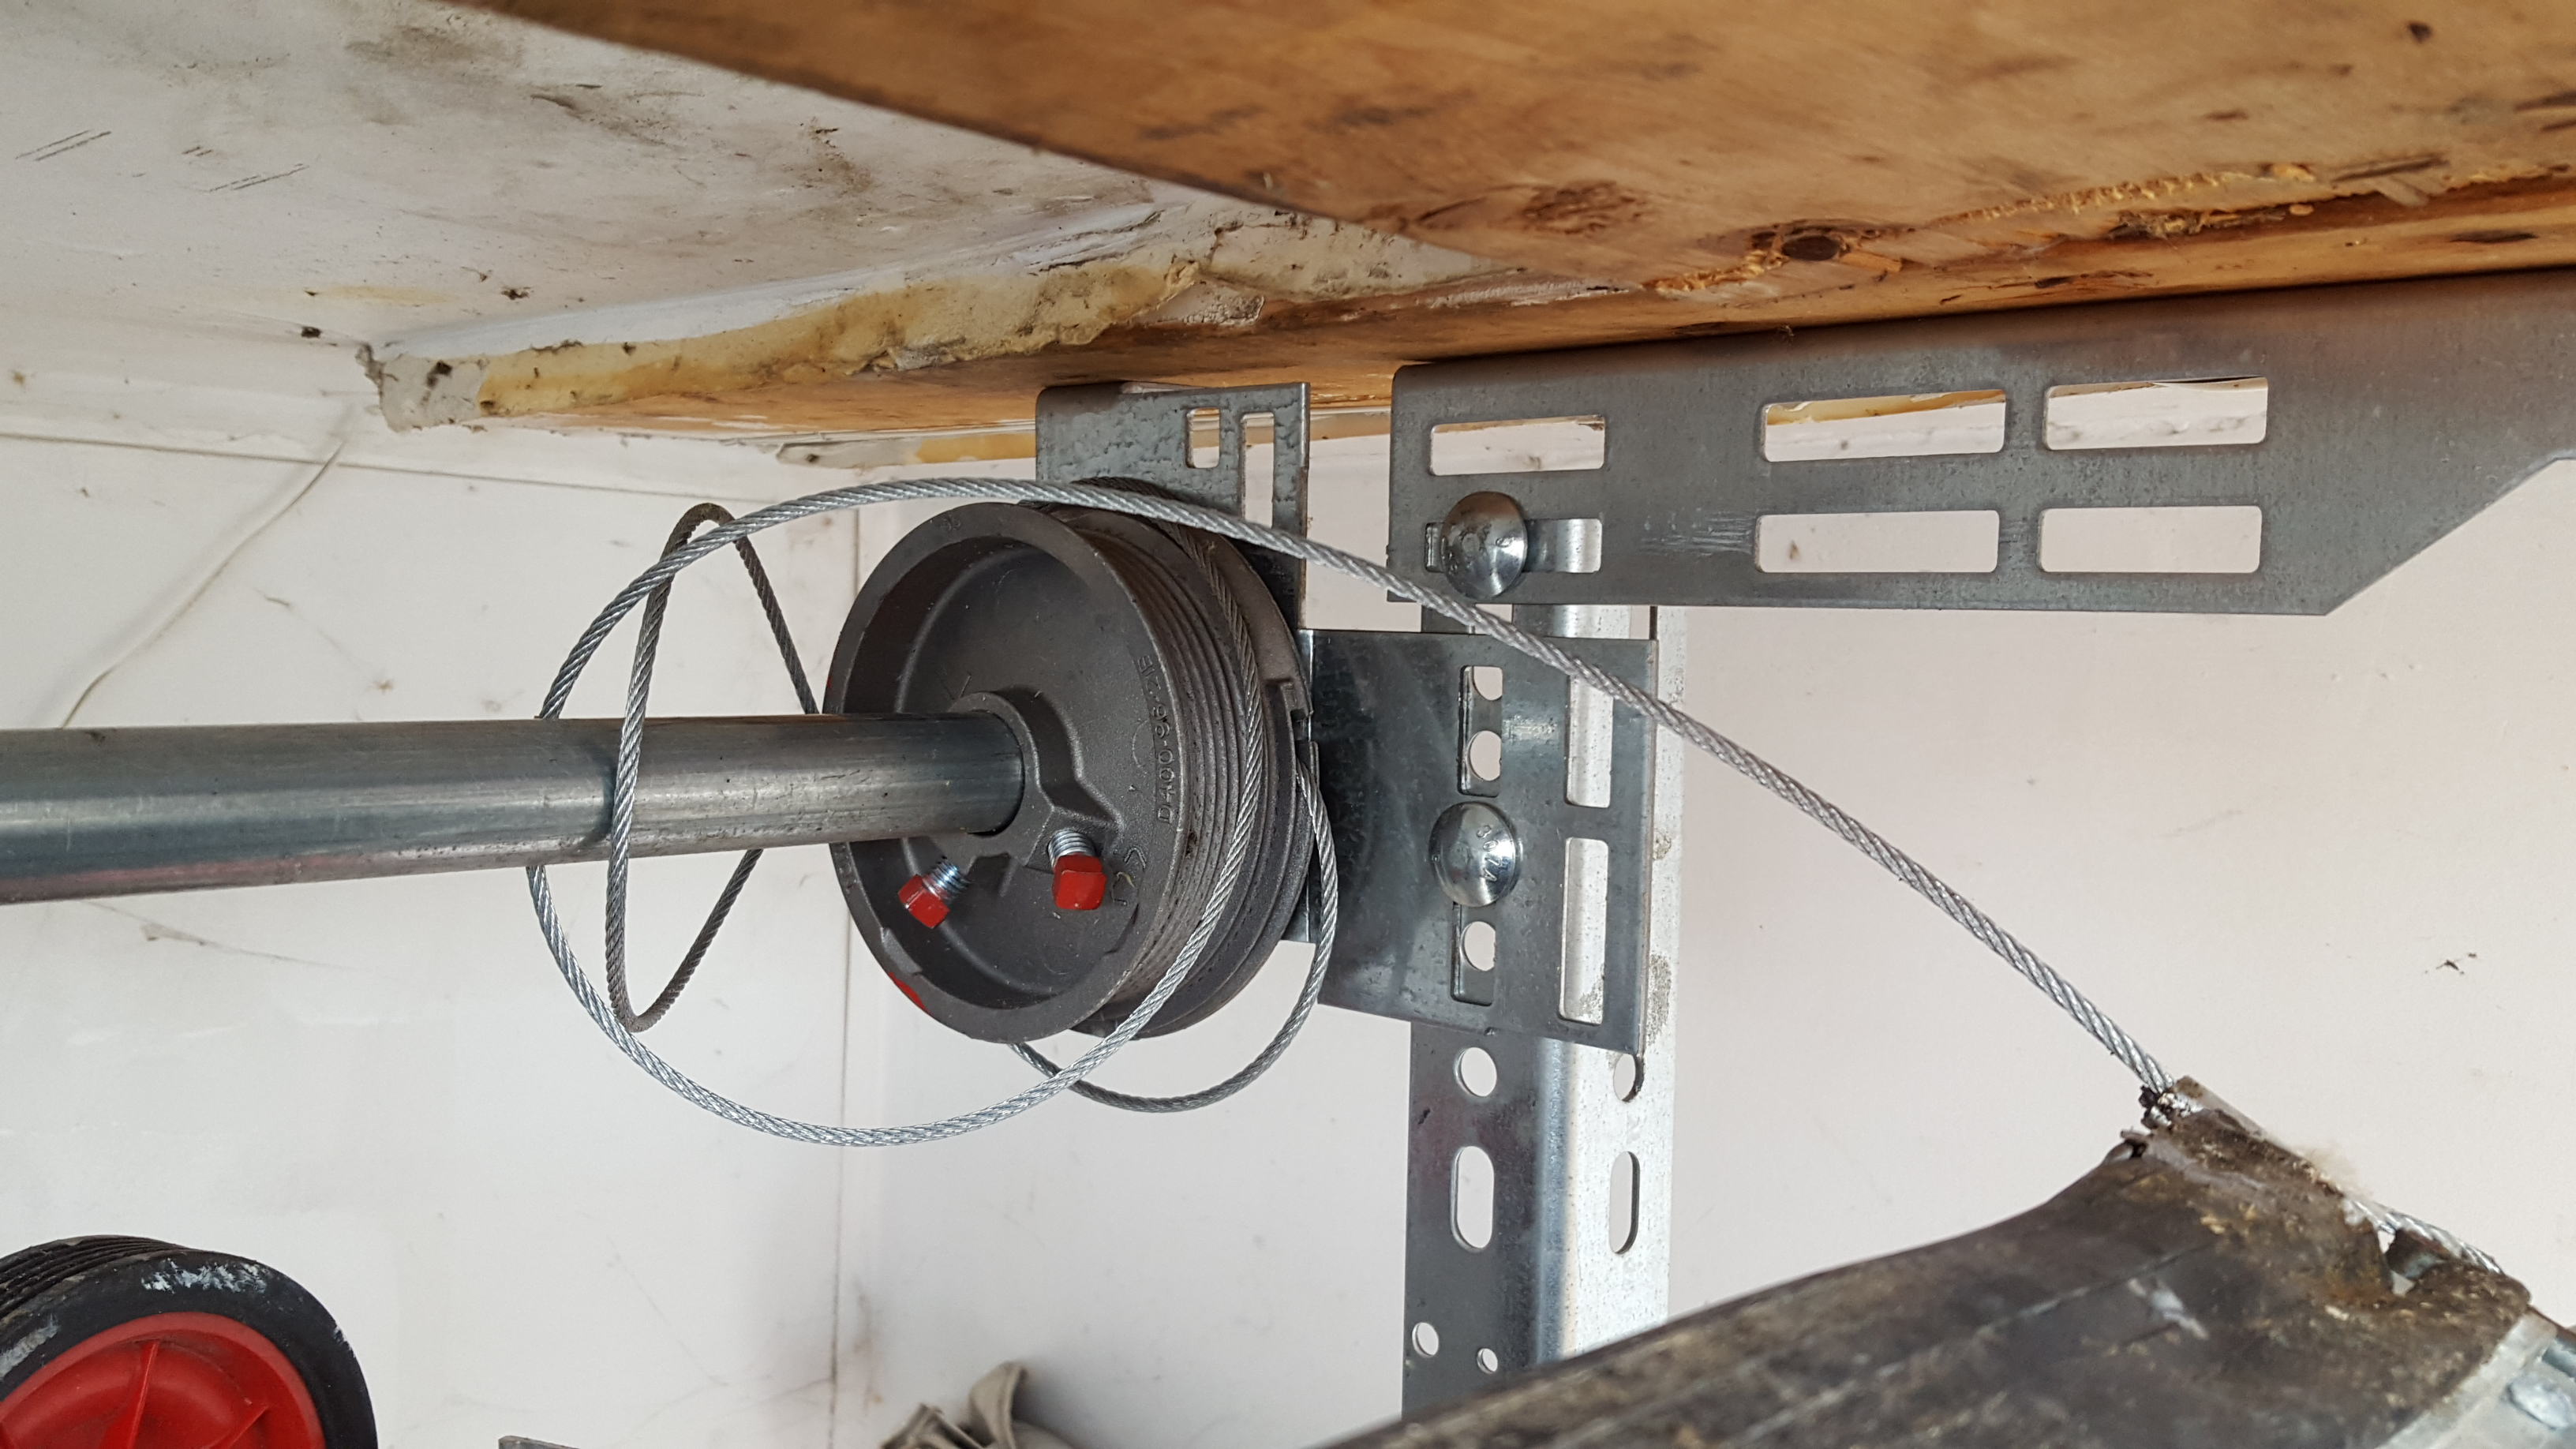 Broken Garage Door Cable Repair Service Dubai 0555293874